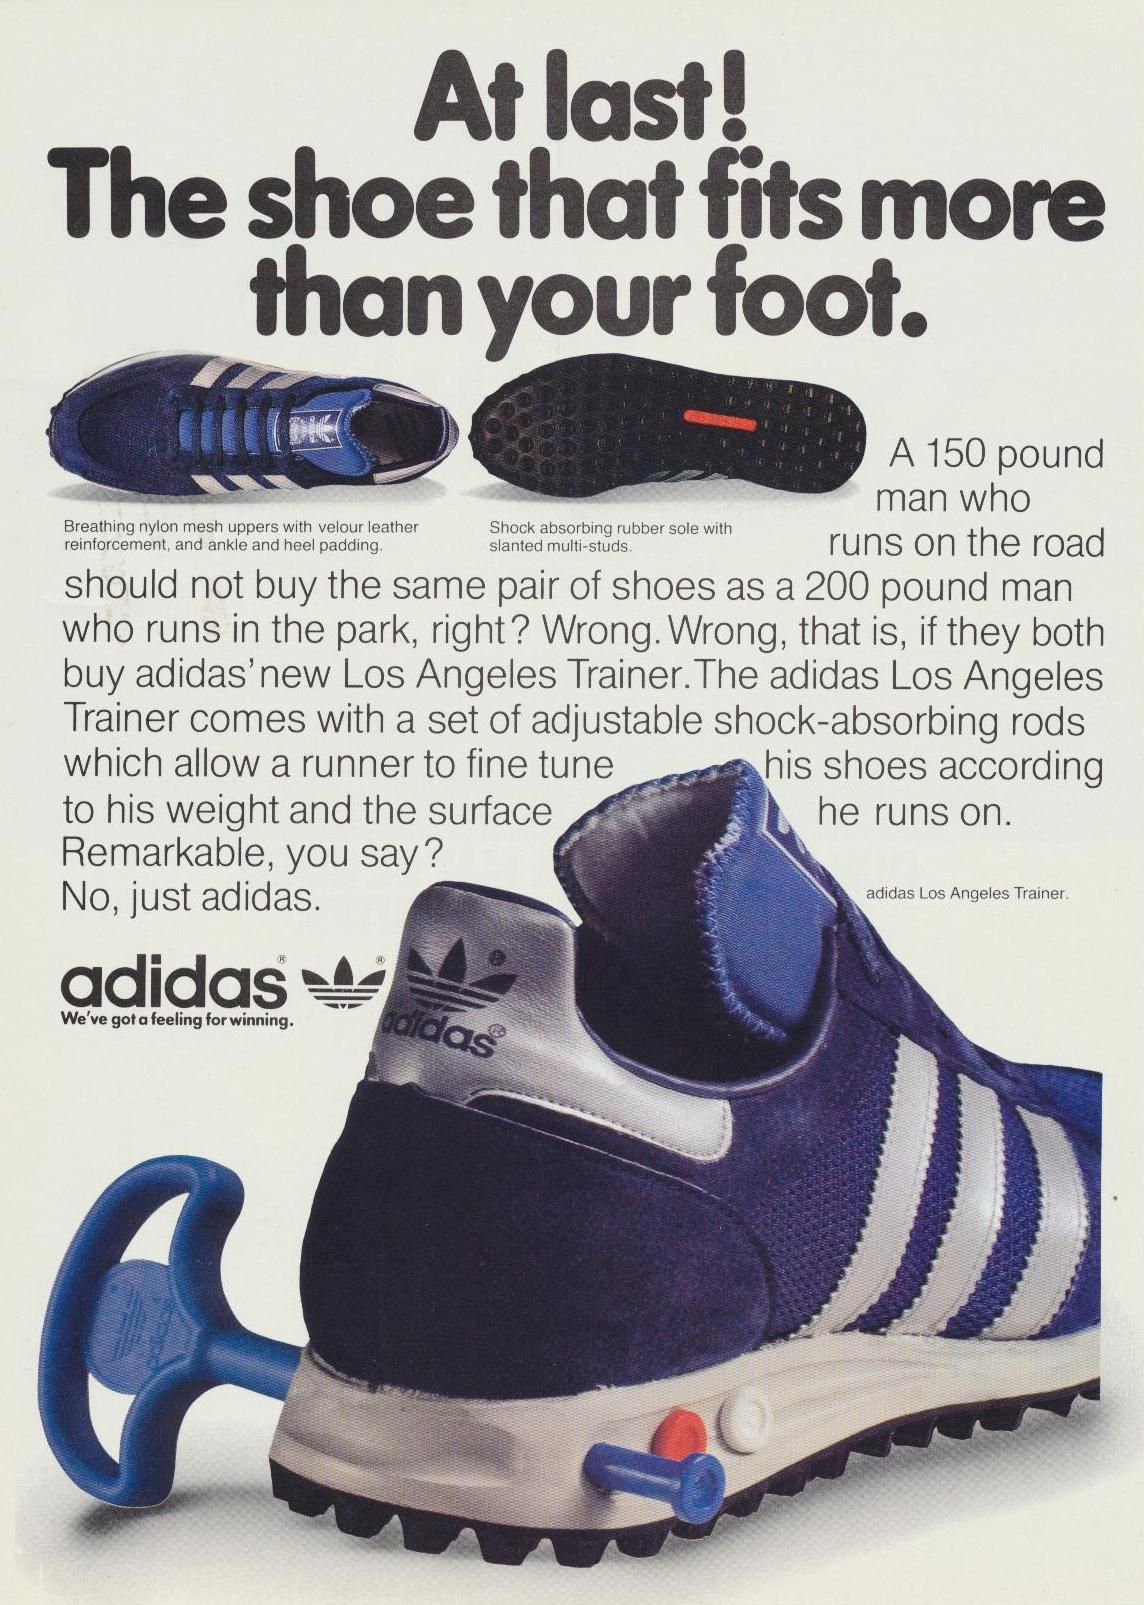 Adidas – The shoe that fits more than your foot   Slavomir Krestian    slavomirkrestian.com ab1f5077e0